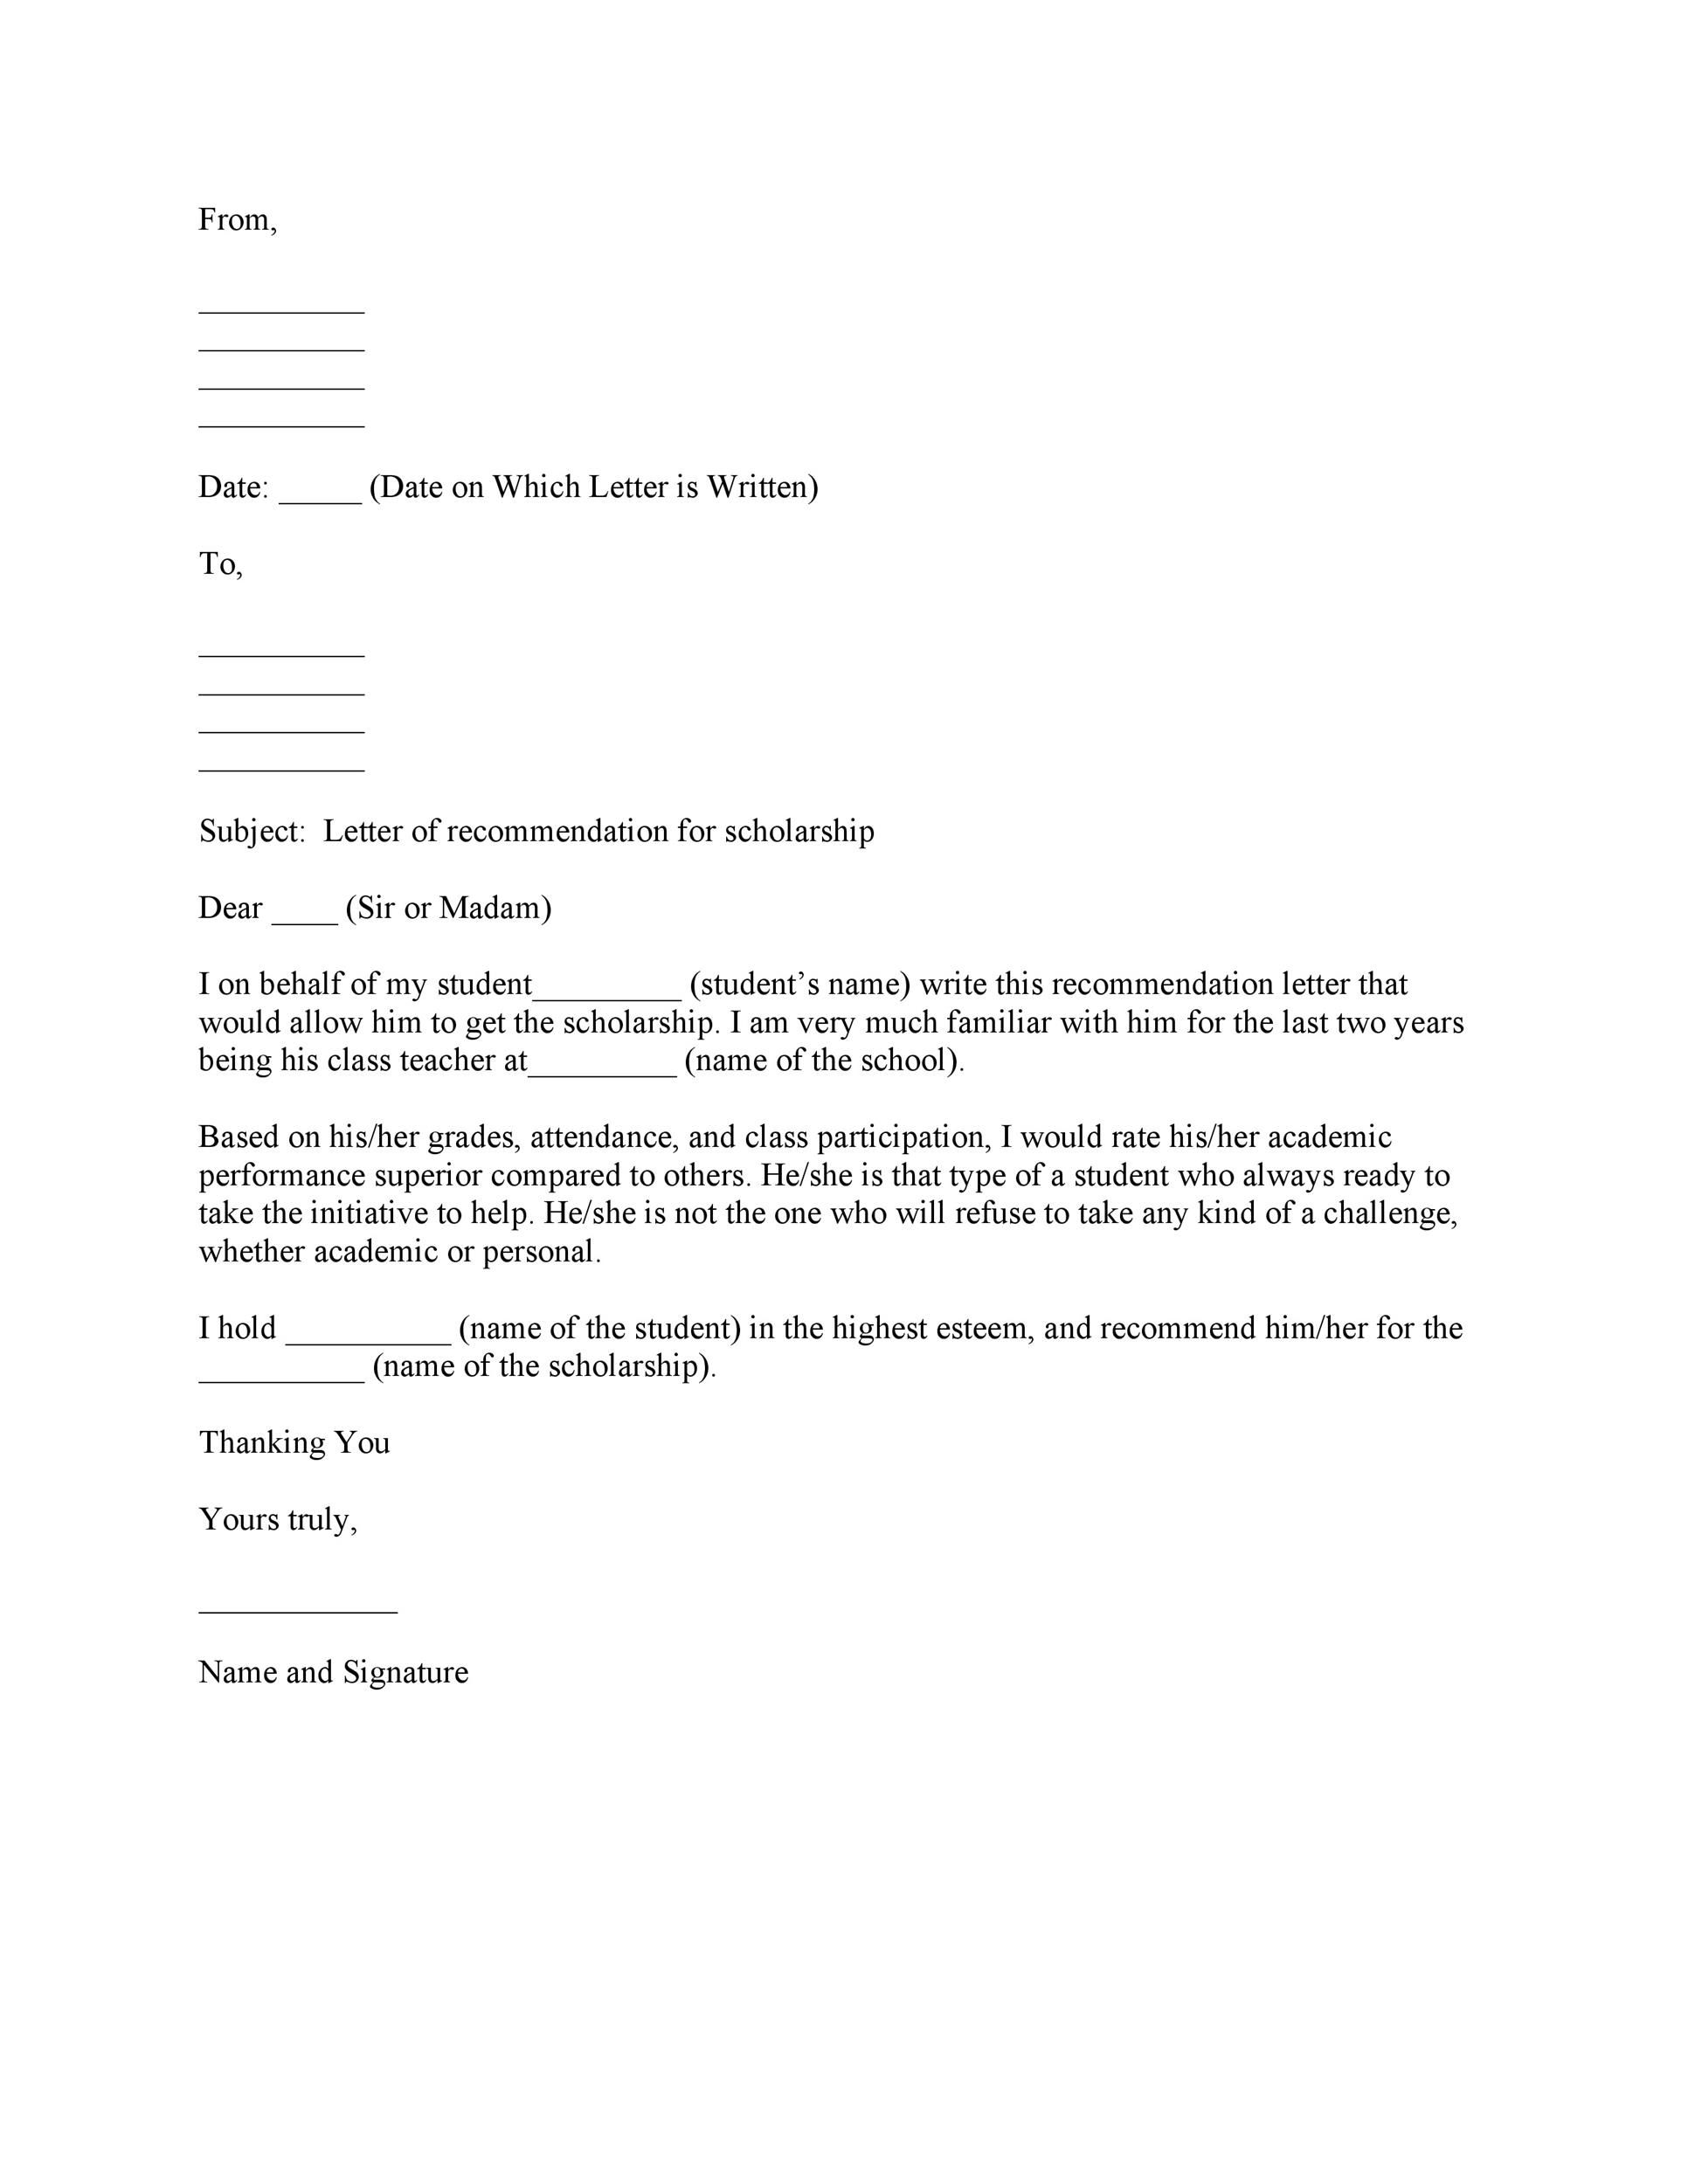 002 Shocking Personal Reference Letter Of Recommendation Template Highest Clarity  Sample CharacterFull